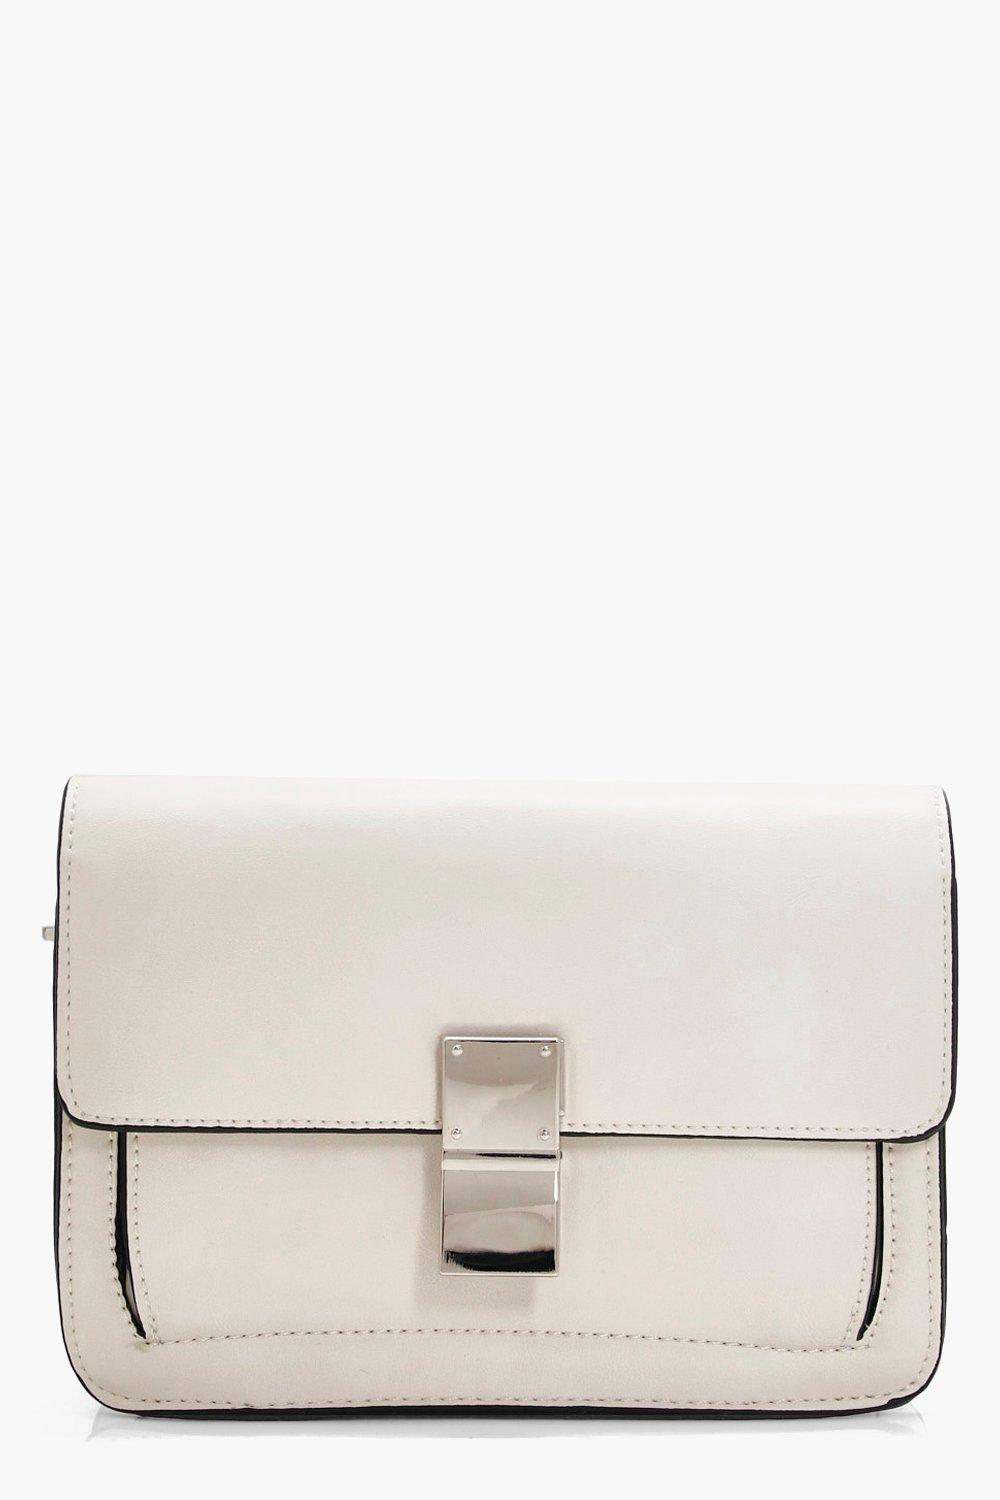 Guitar Strap Detail Cross Body Bag - white - Daisy